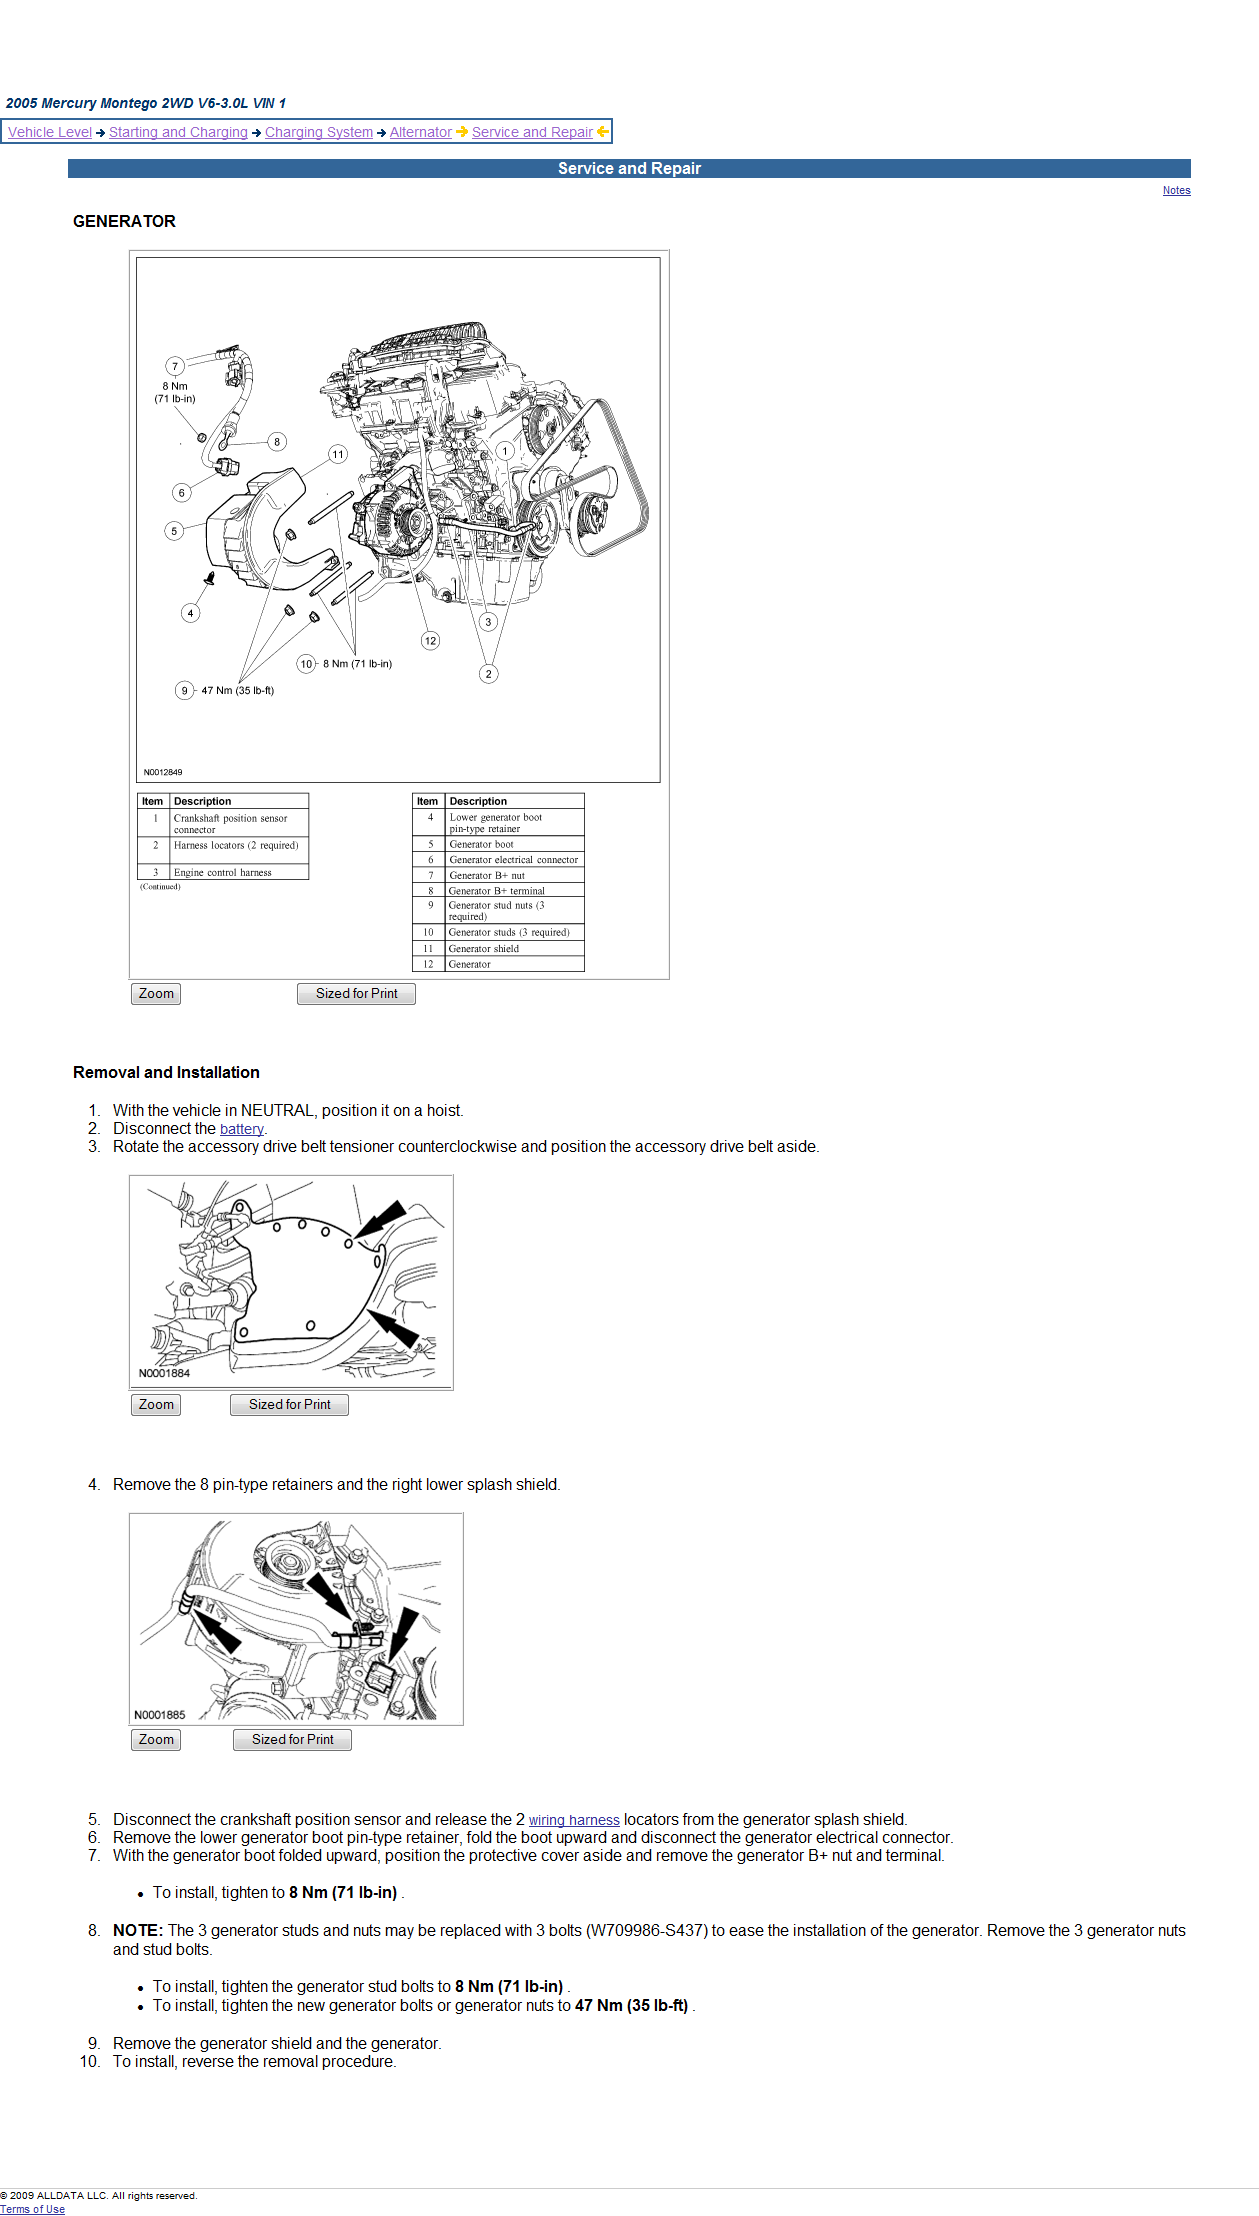 How Do I Get To The Alternator On My 05 Montego Change It Not Mercury 9 8 Wiring Diagram Graphic